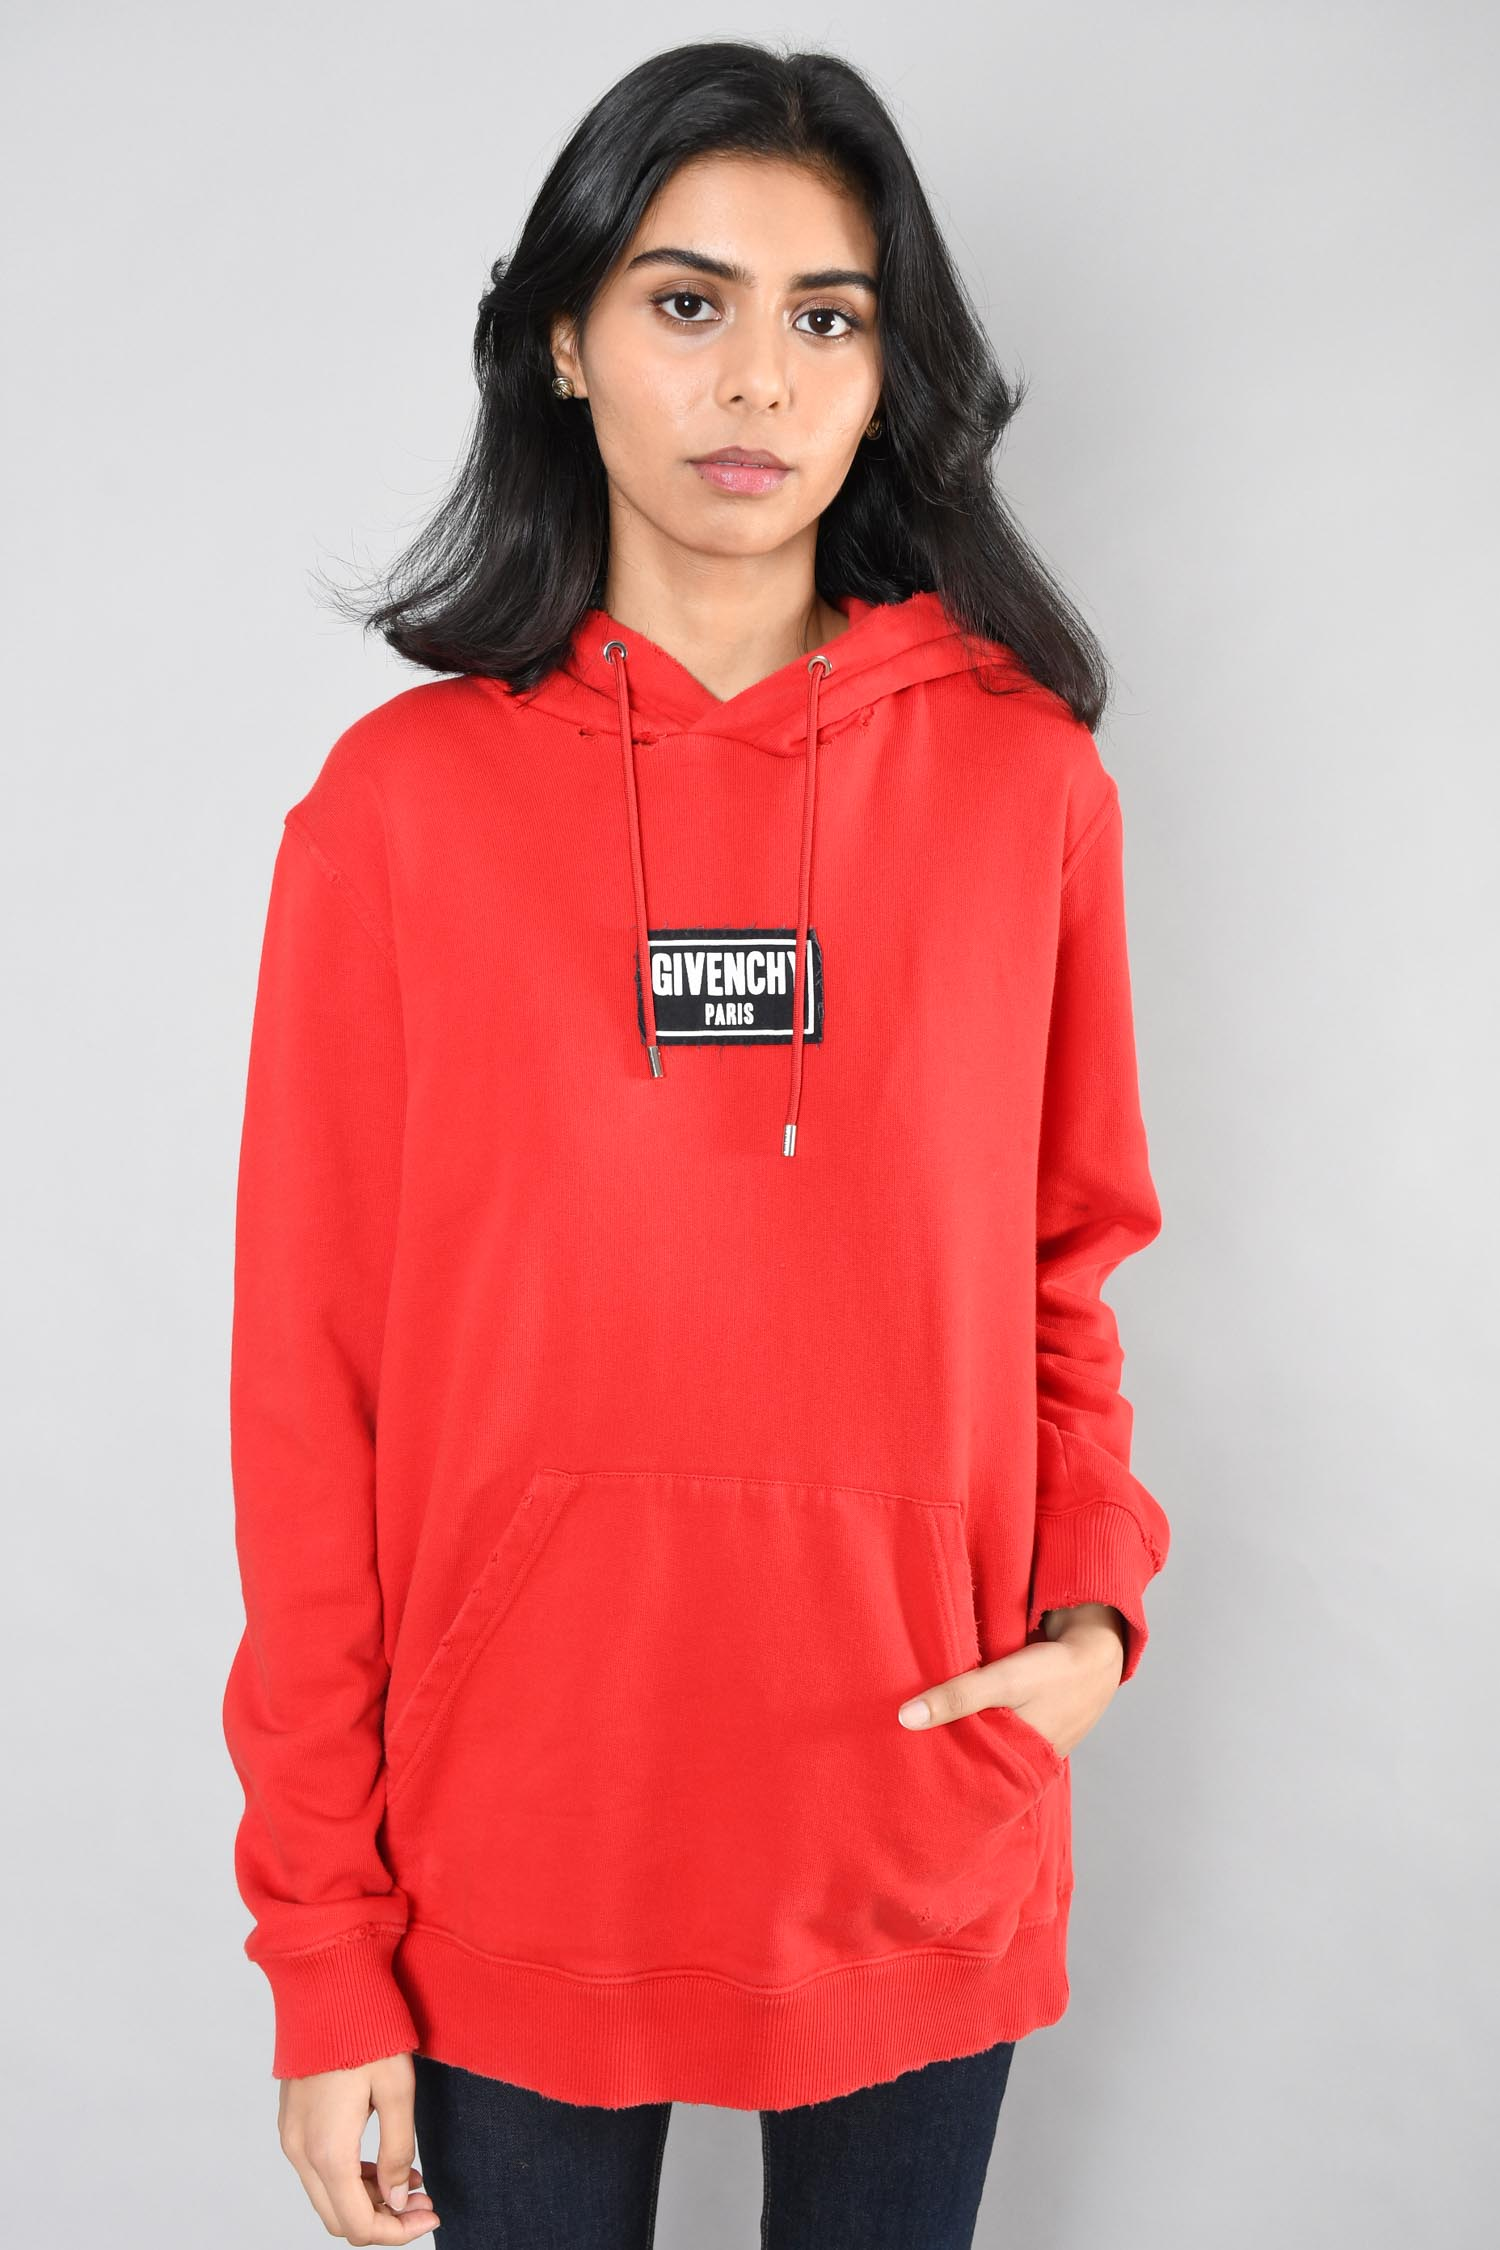 Givenchy Red Box Logo Distressed Hoodie Size S